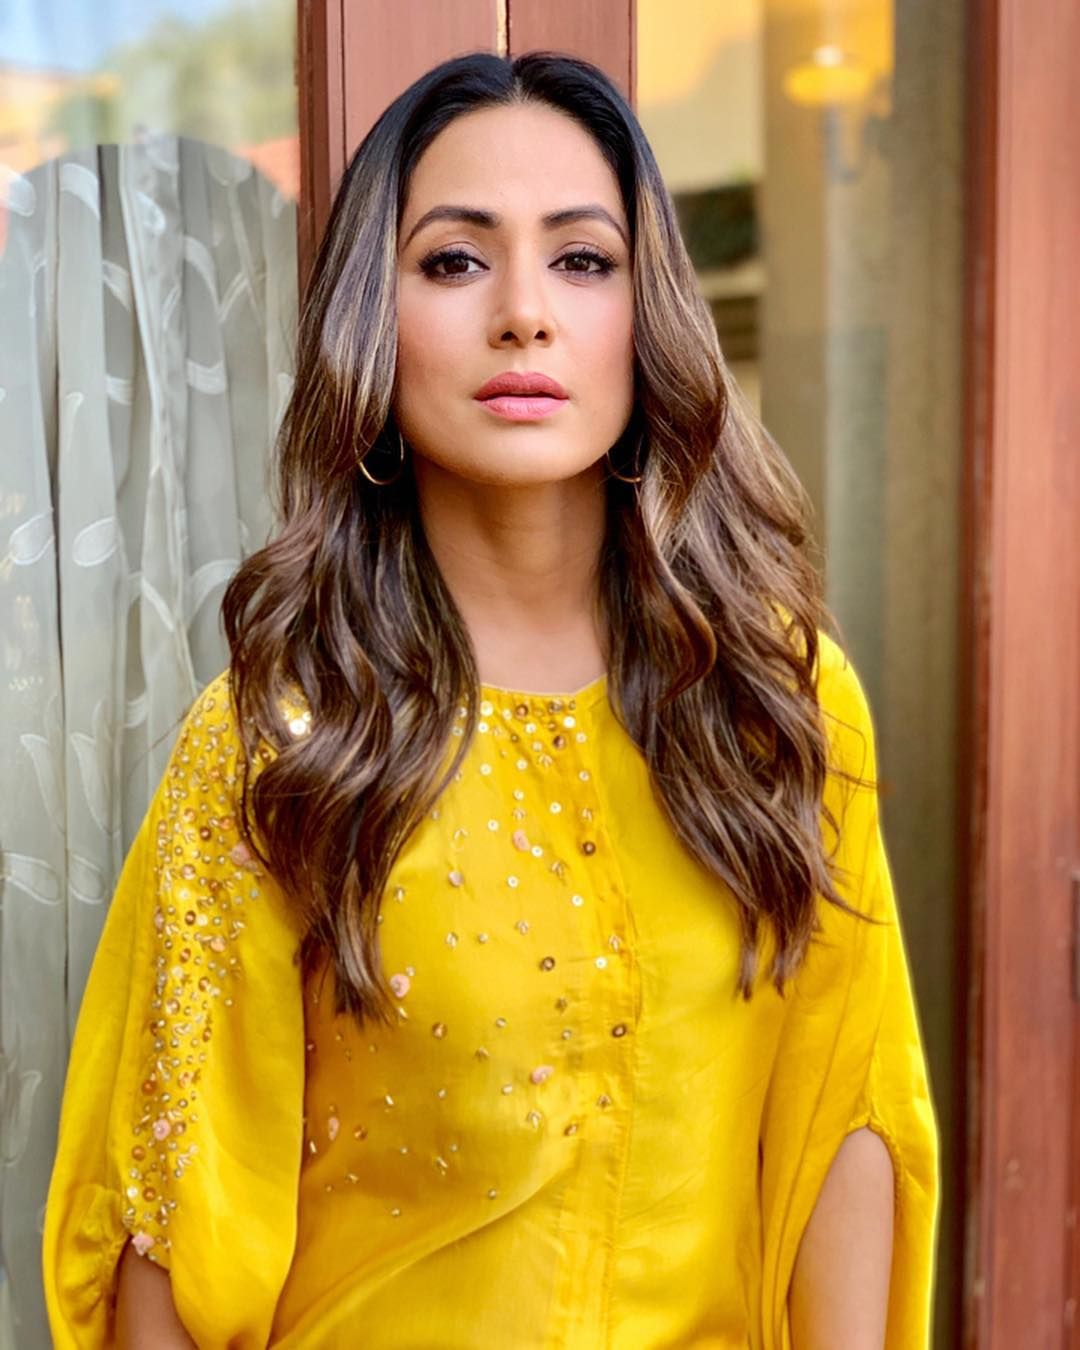 Hina Khan, Erica Fernandes And Shivangi Joshi Look Effortlessly Charming In Yellow Outfits